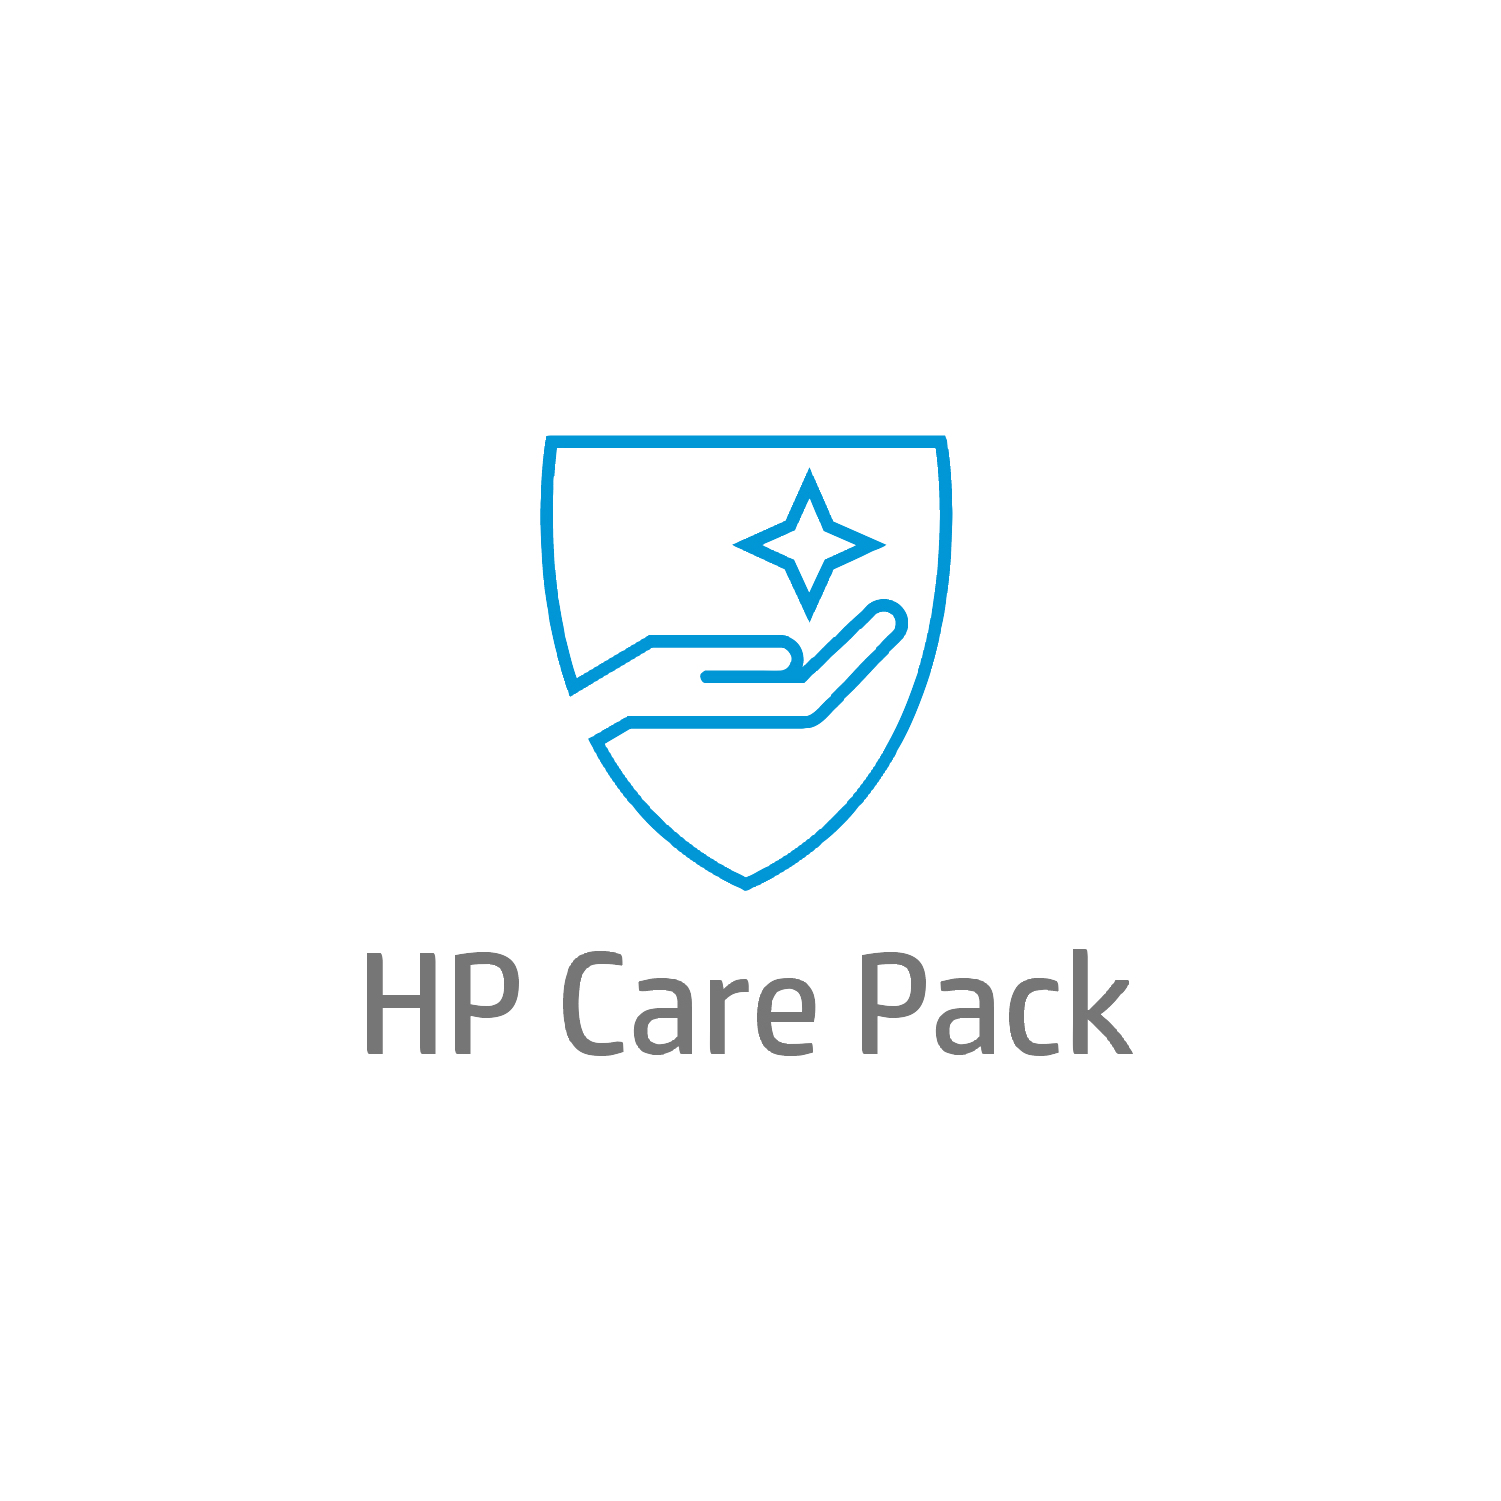 HP 3y AbsoluteDDS Prof 1-2499 Svc,PPS Commercial PCs,3 Year Customer Base Multiple Units Support Premium Professional And STD Svc Support Corporate Education Healthcare U8UN8E - C2000